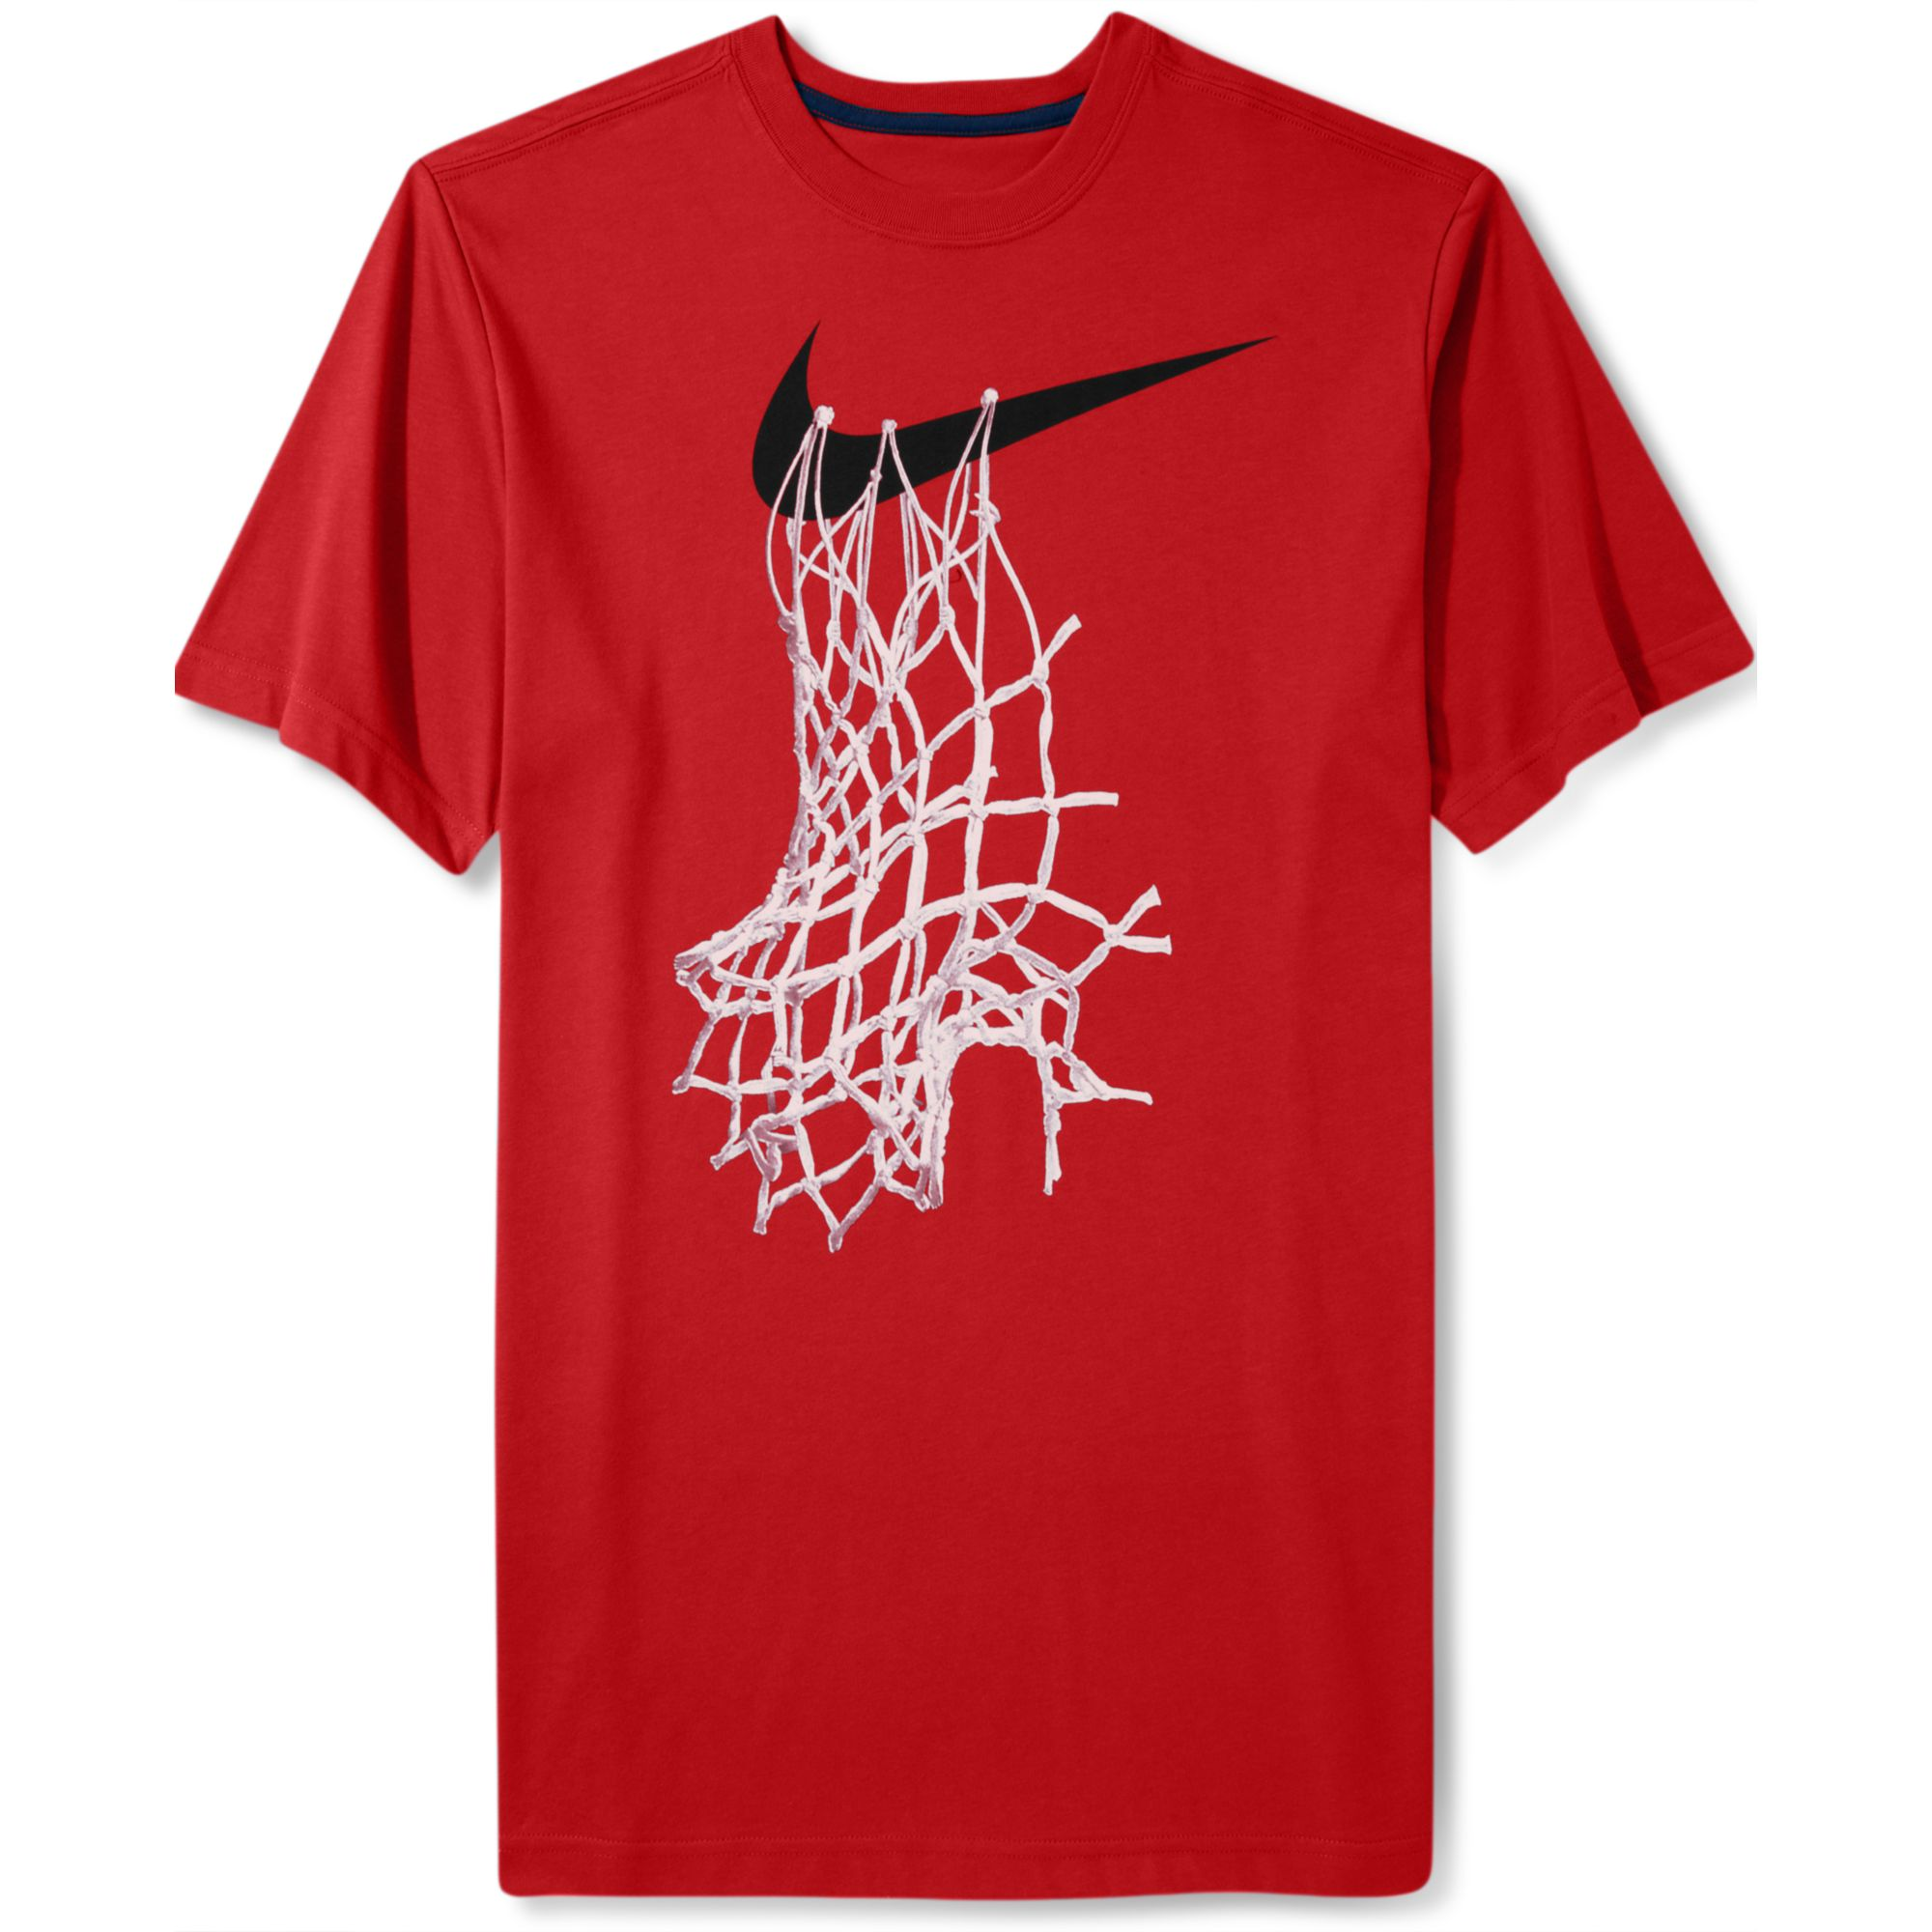 nike shortsleeve graphic basketball net tshirt in red for. Black Bedroom Furniture Sets. Home Design Ideas